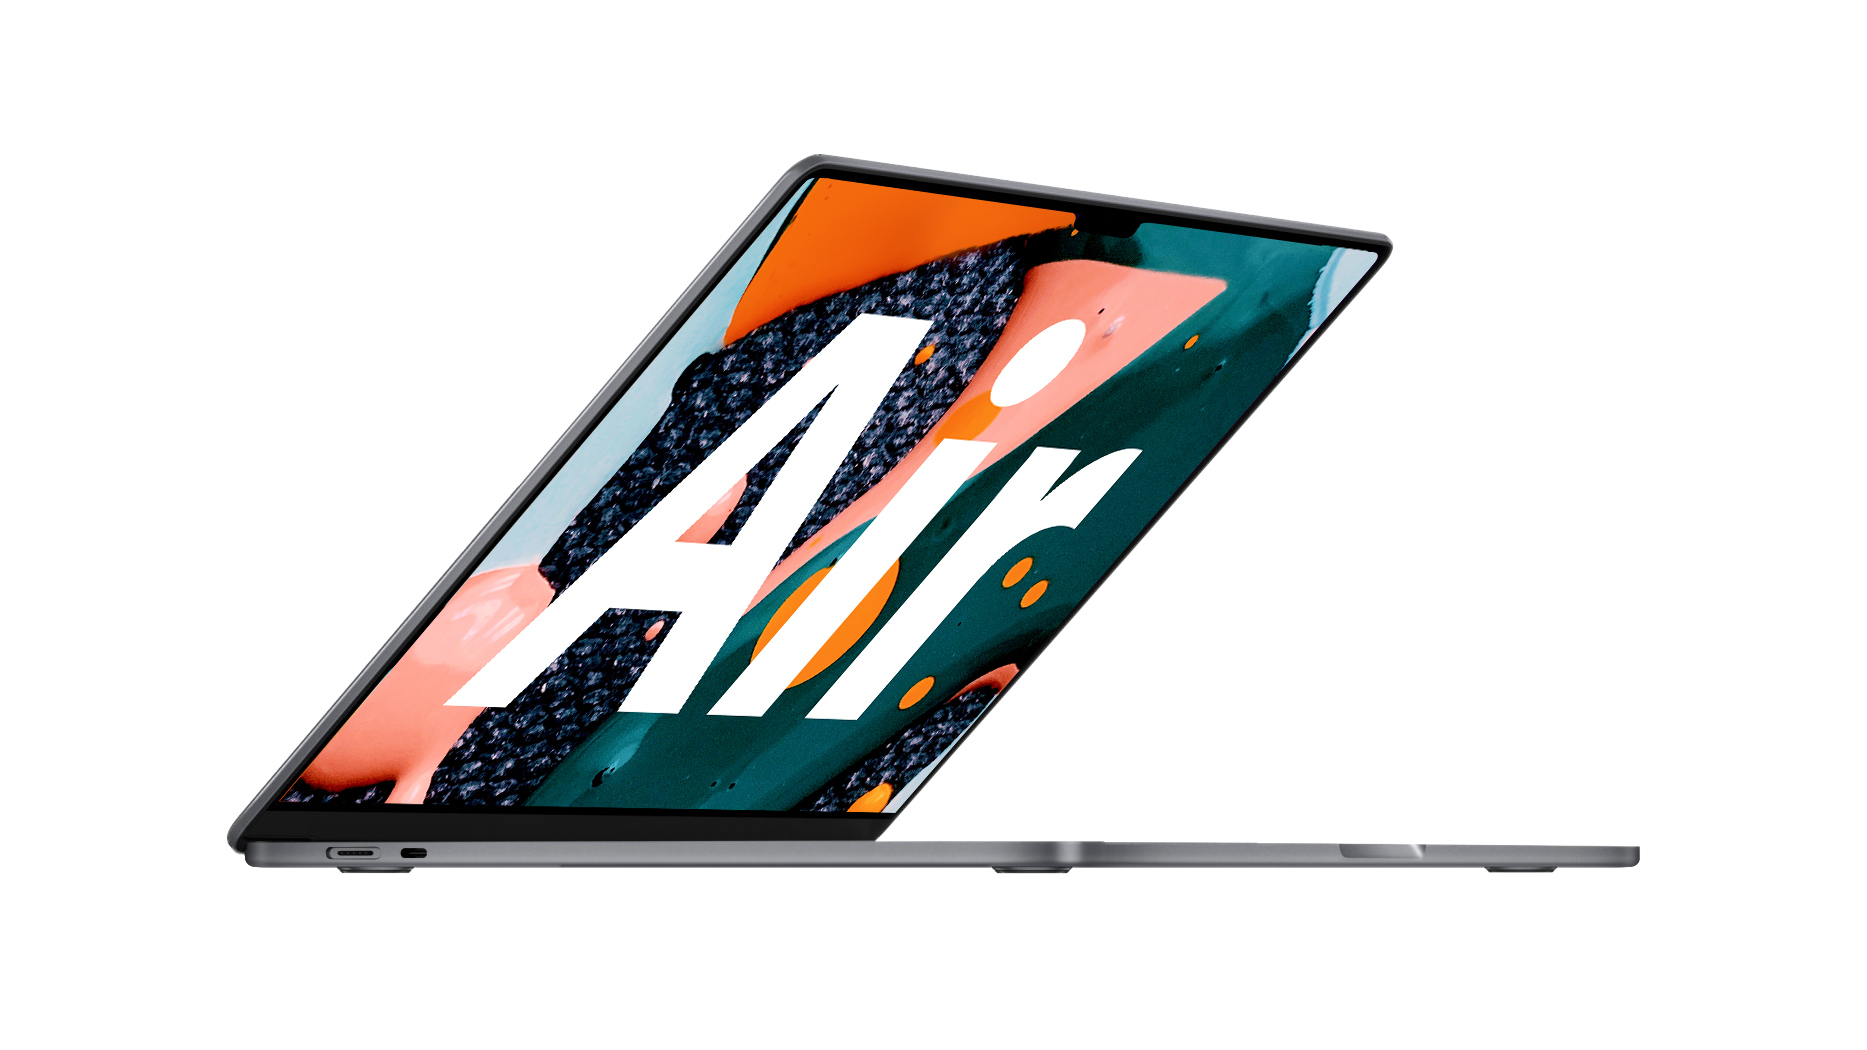 notch macbook air rounded mock